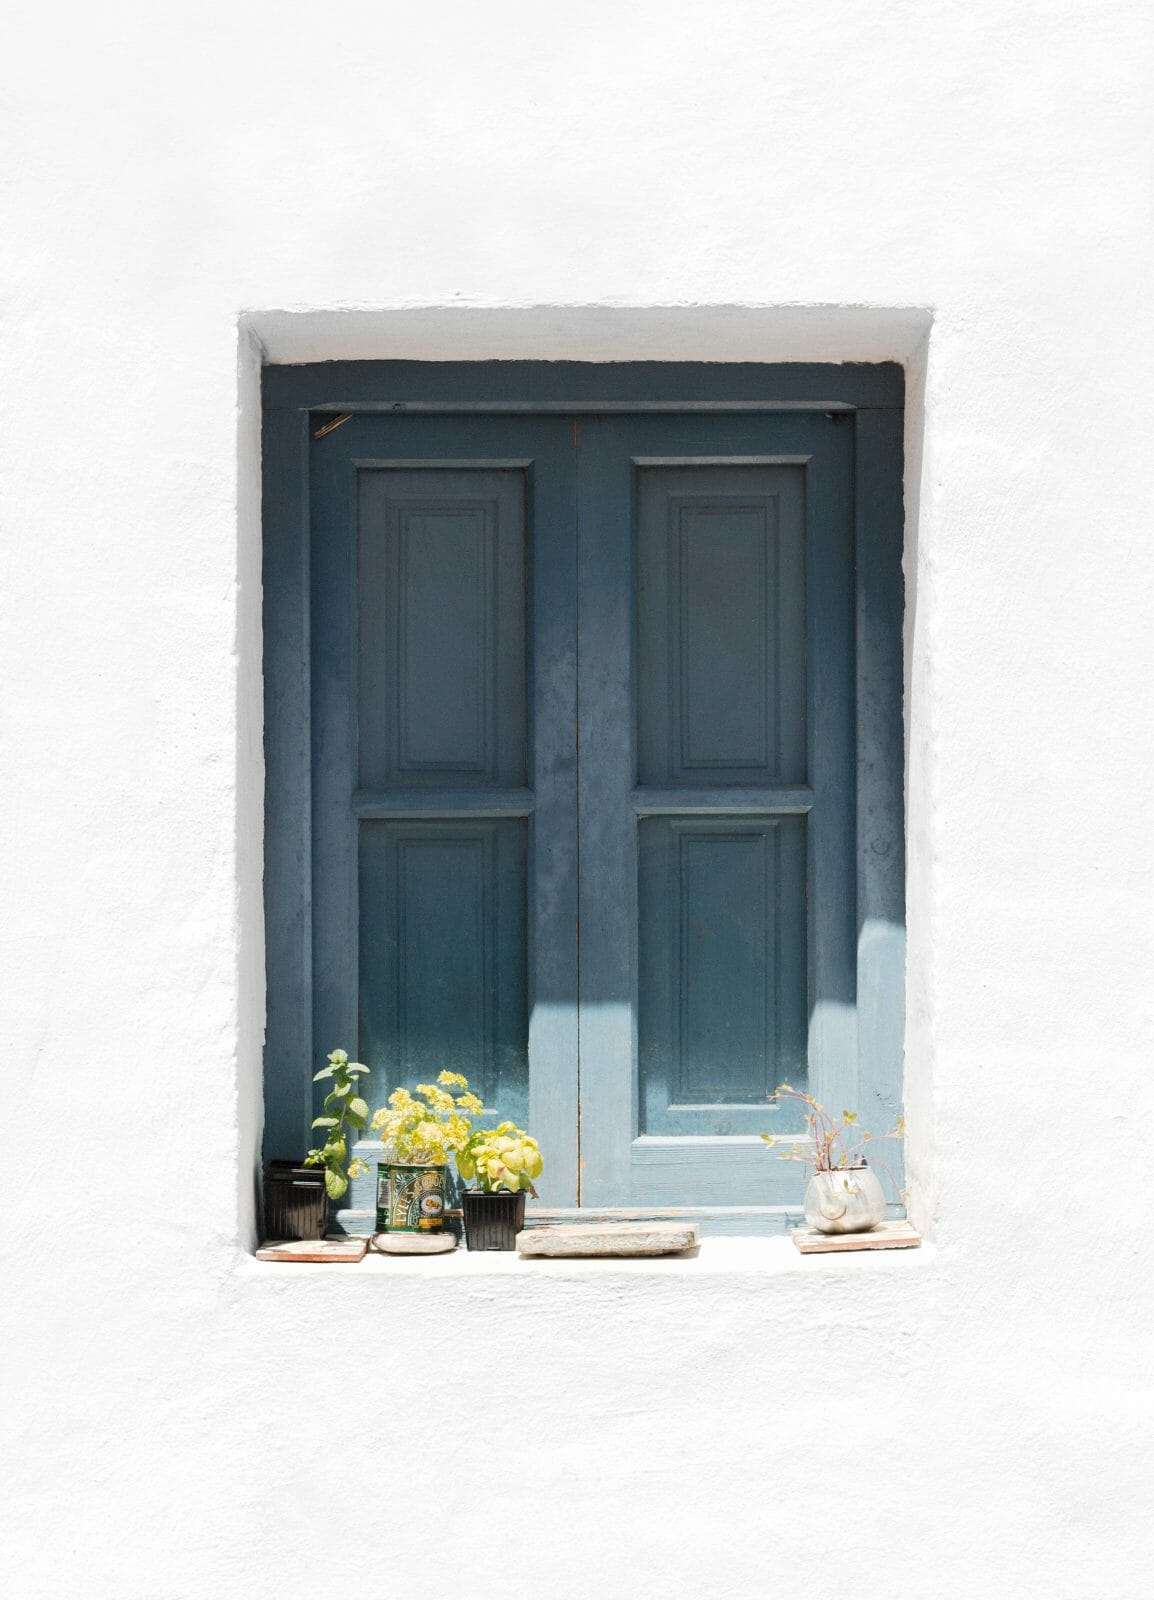 Picture of window with shutters for Real Wealth Show Podcast Episode #701